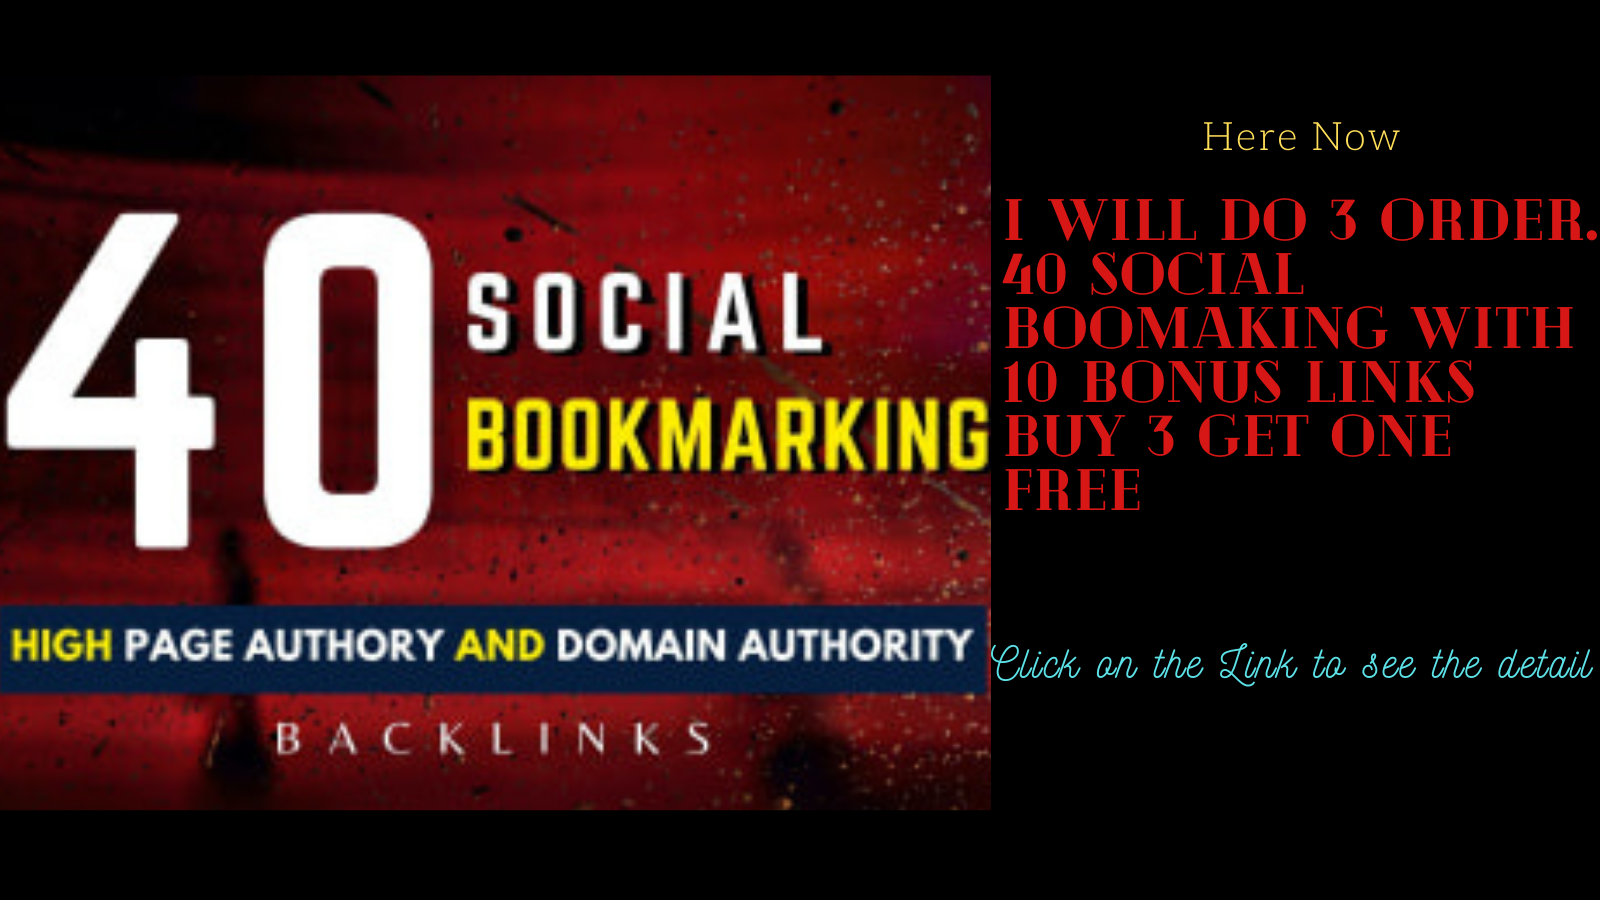 (I will do 10 order). 40 social Boomarking High Domain Authority 45 To 90